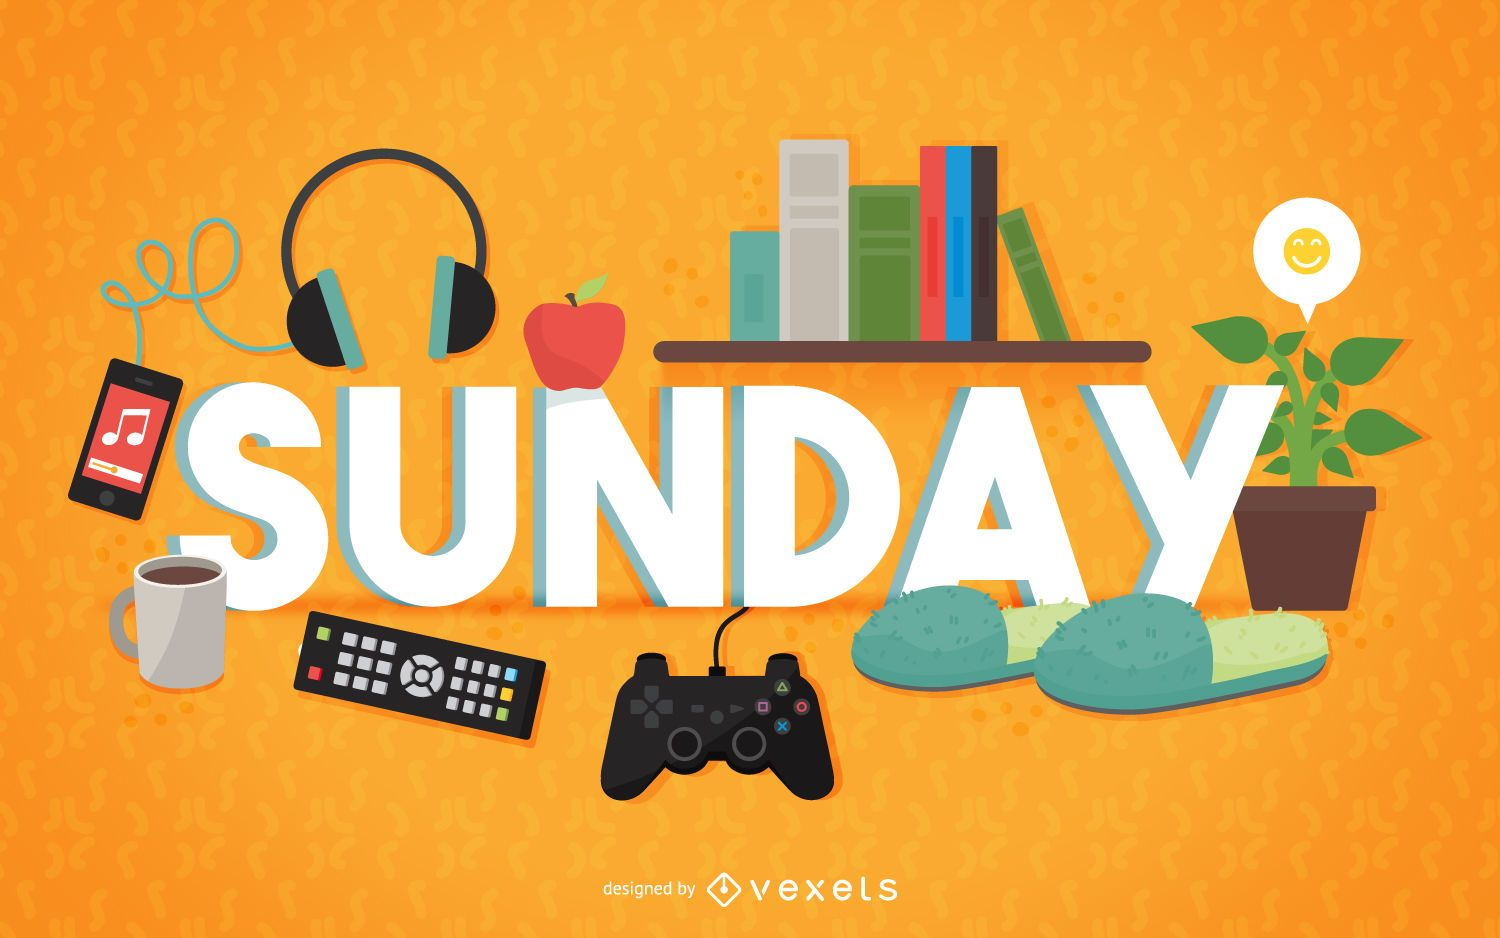 Sunday relax sign